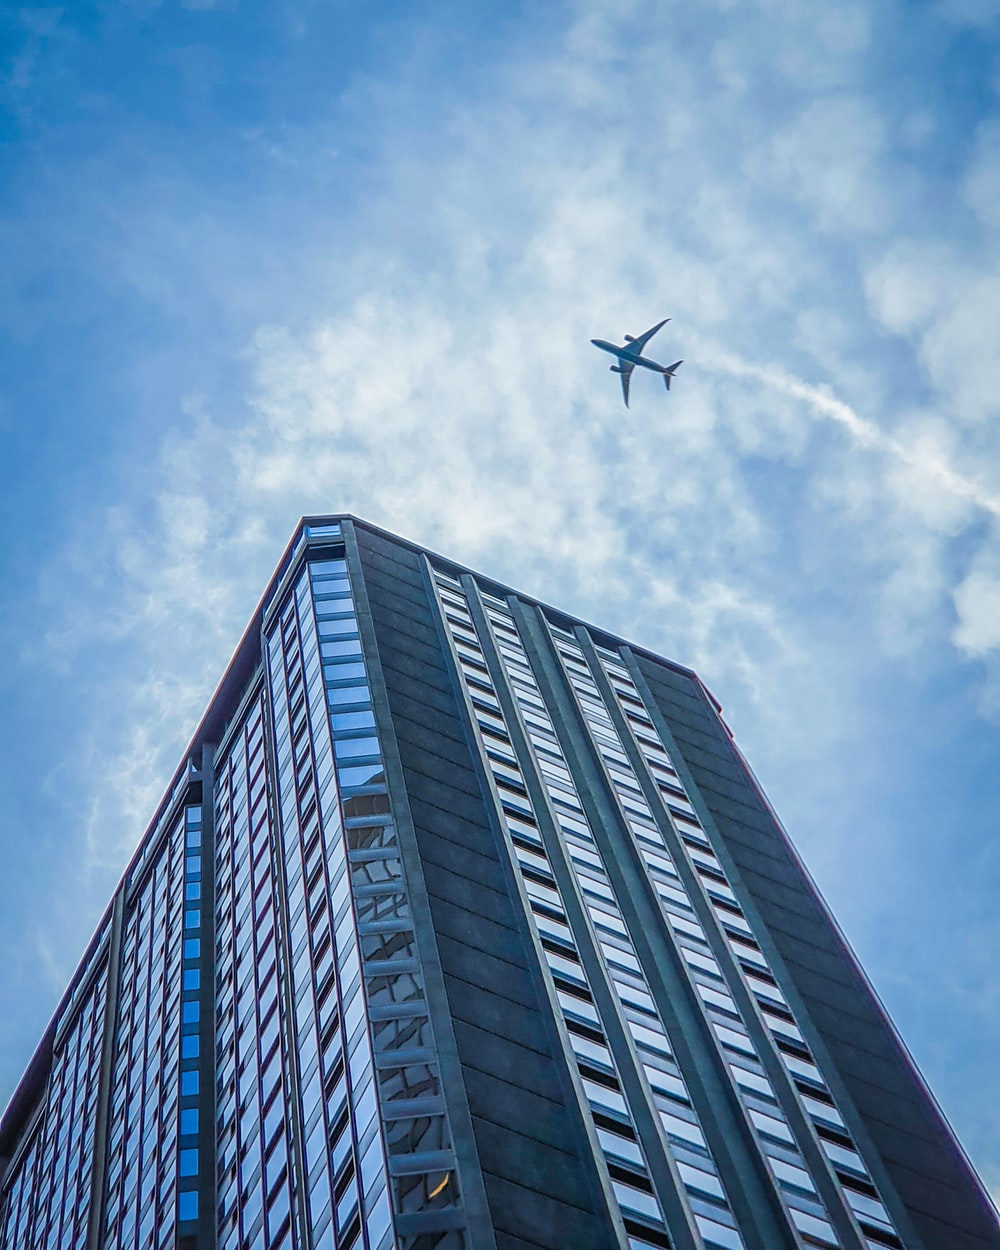 white airplane flying over gray concrete building during daytime